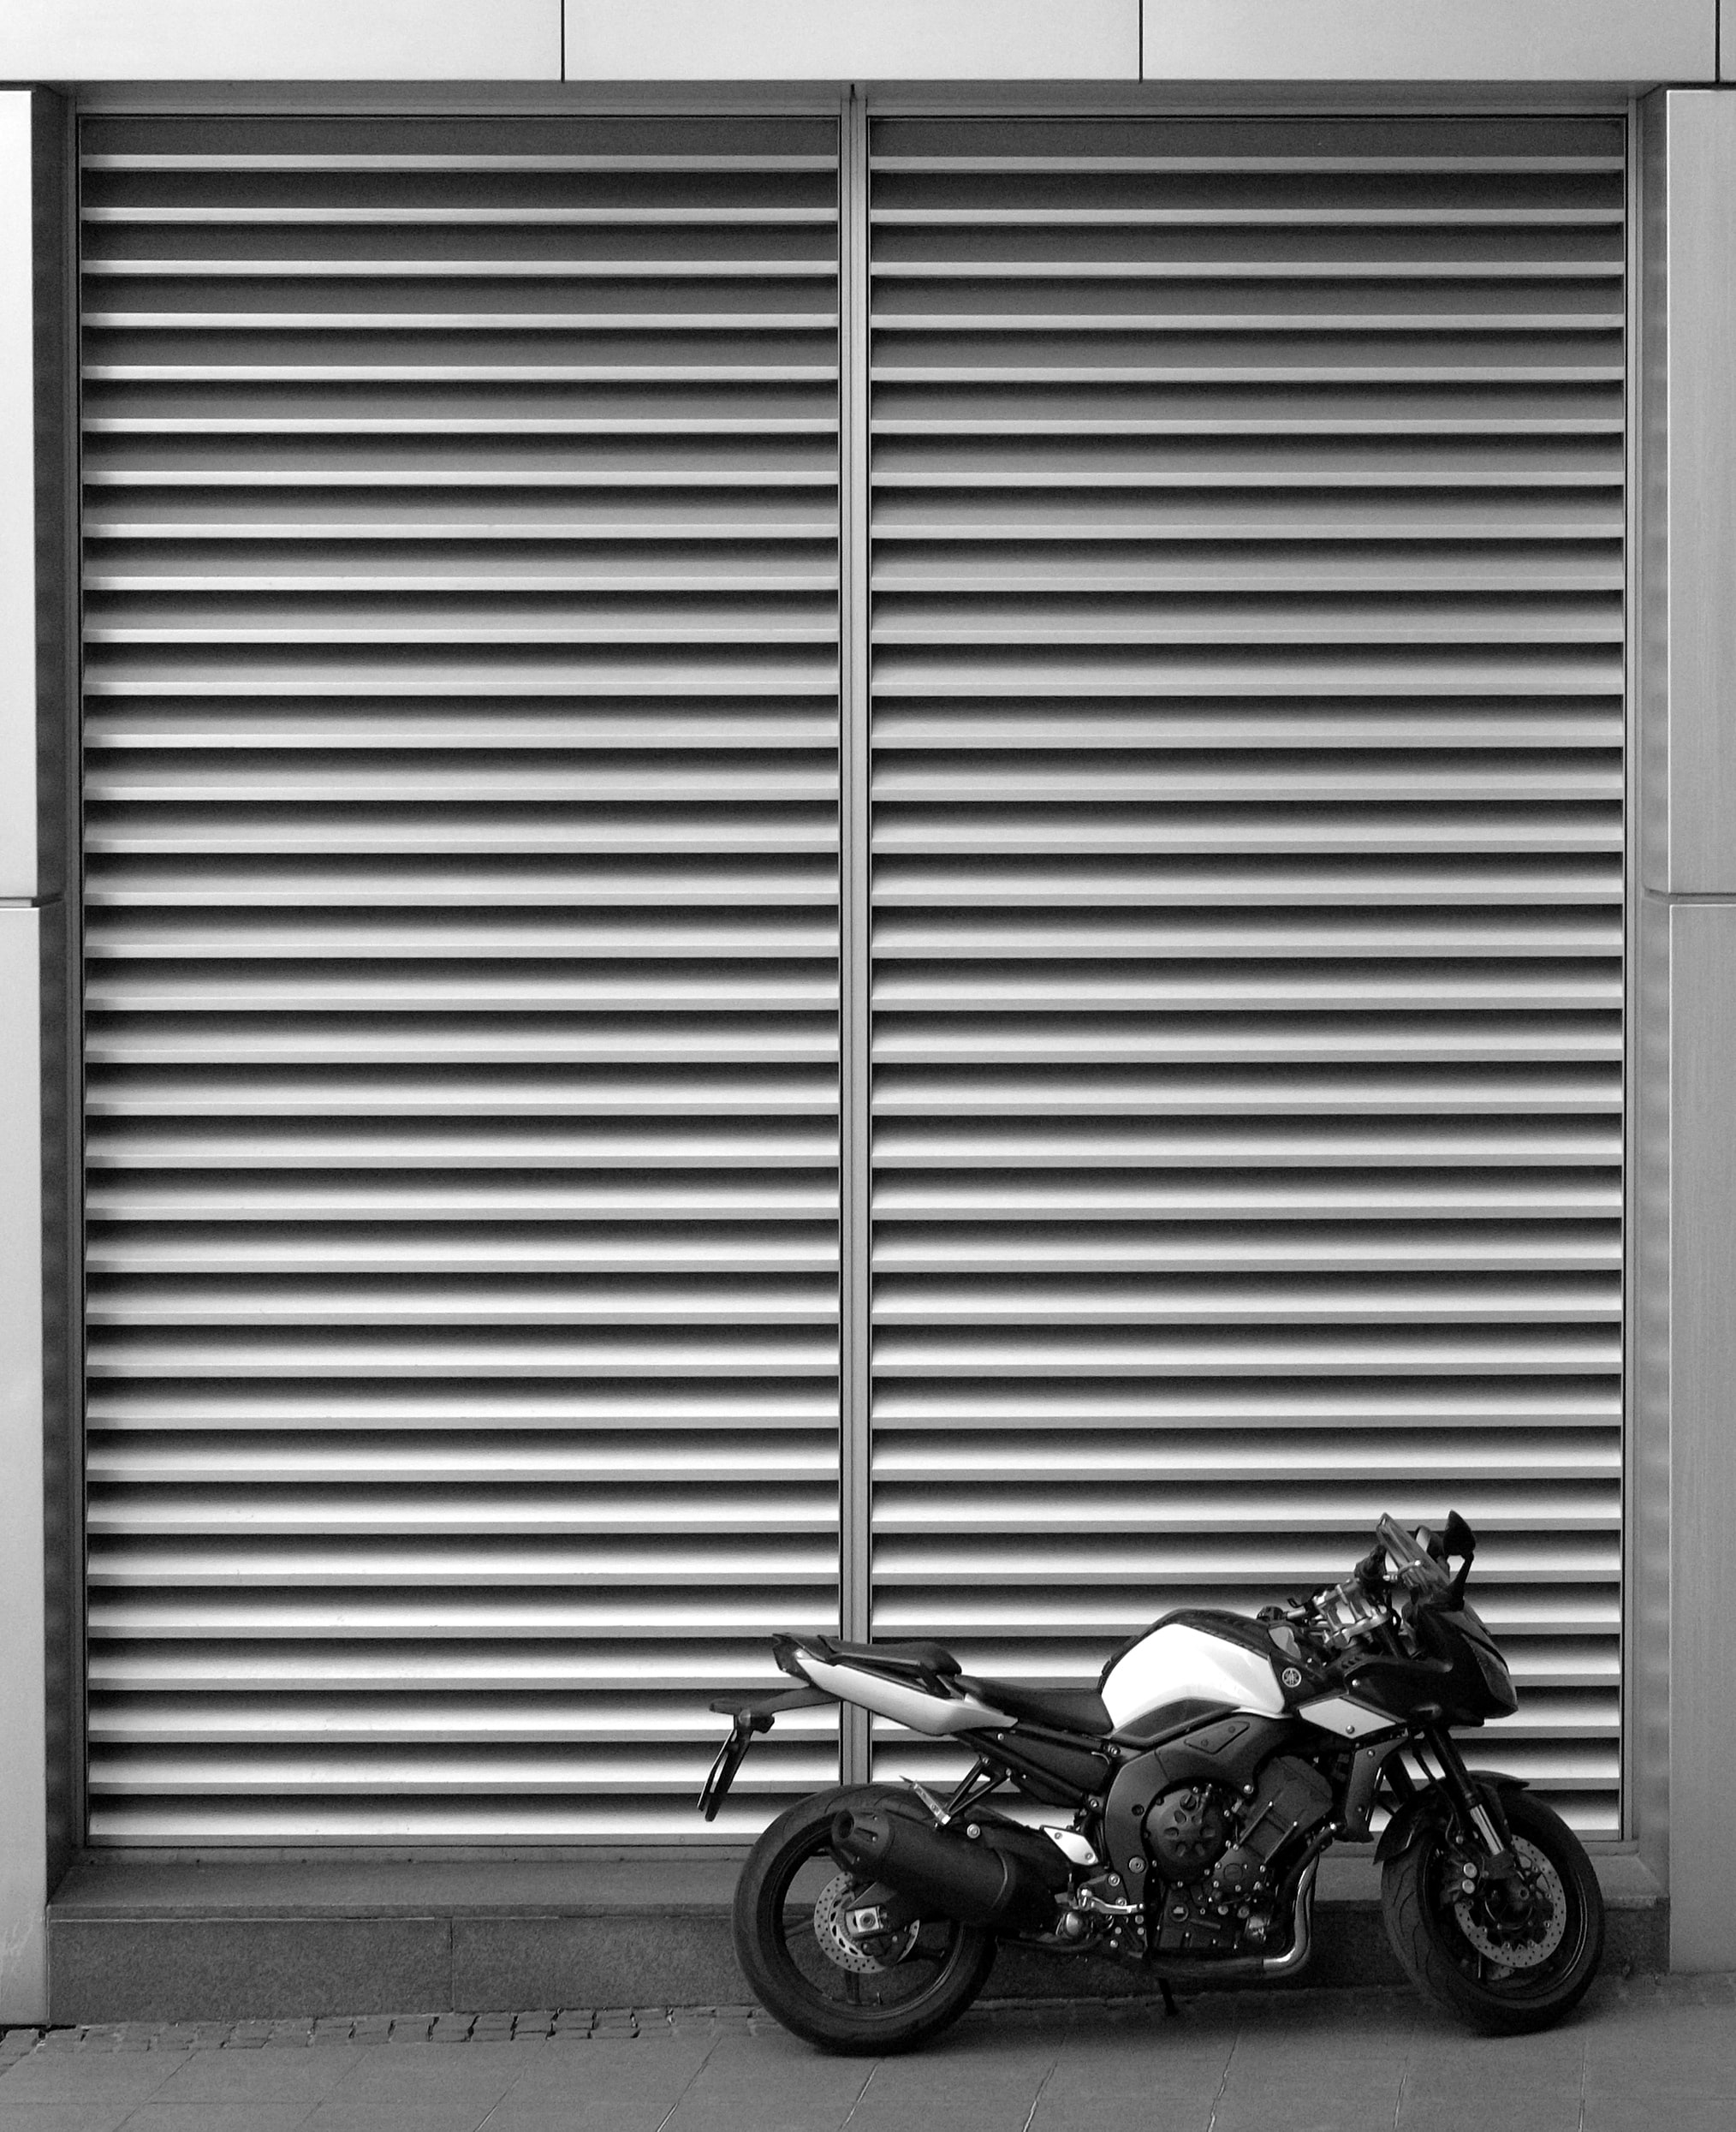 Black and white shot of motorbike parked in front of storefront shutters